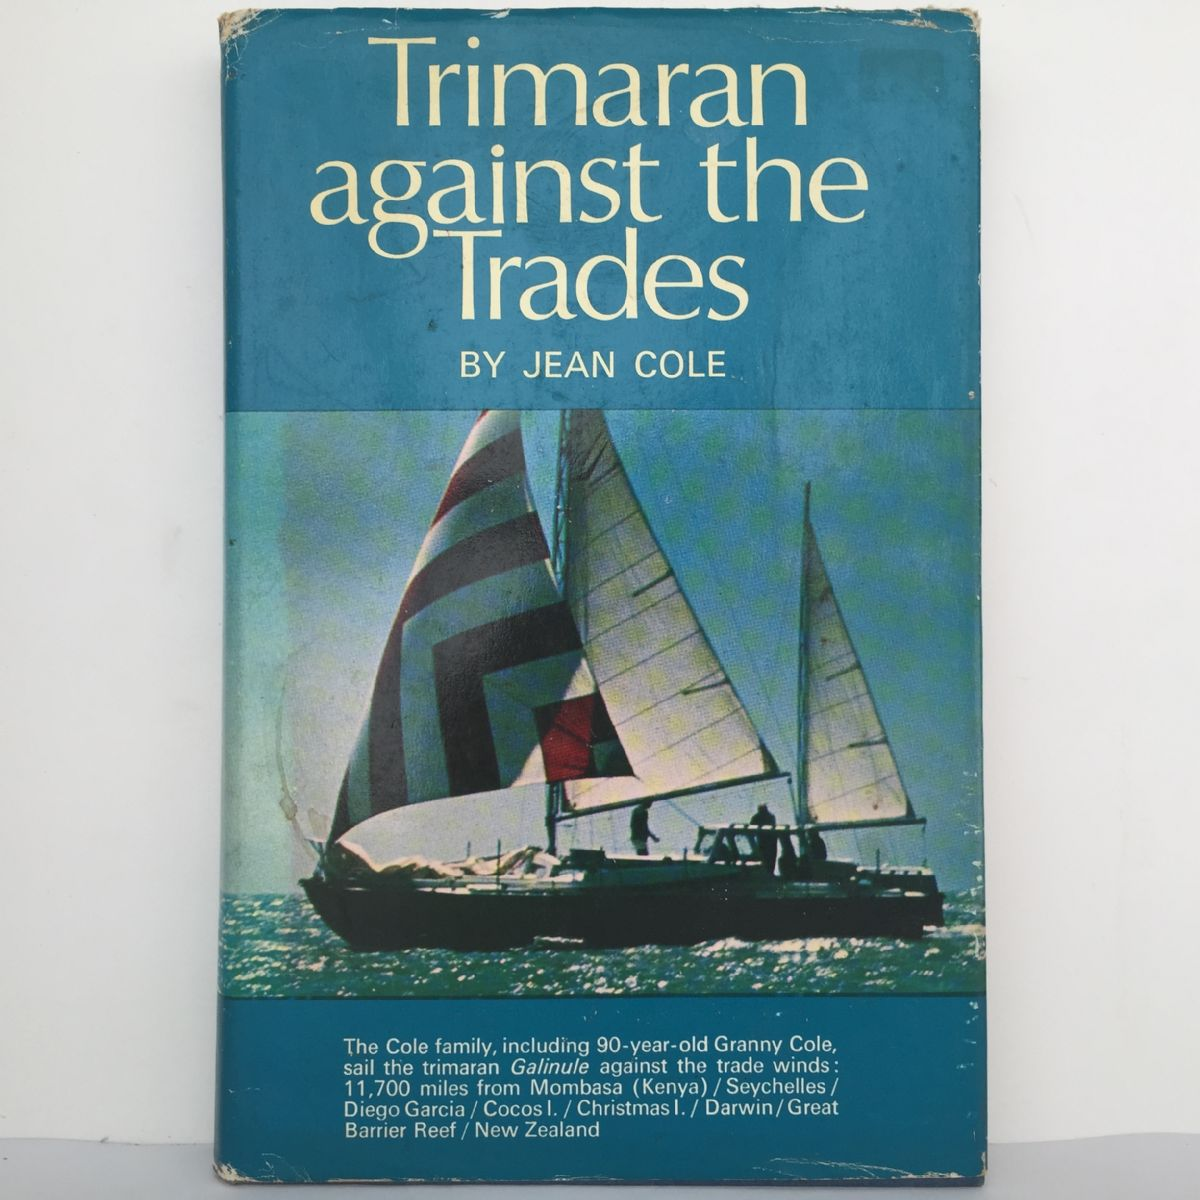 Trimaran Against the Trades